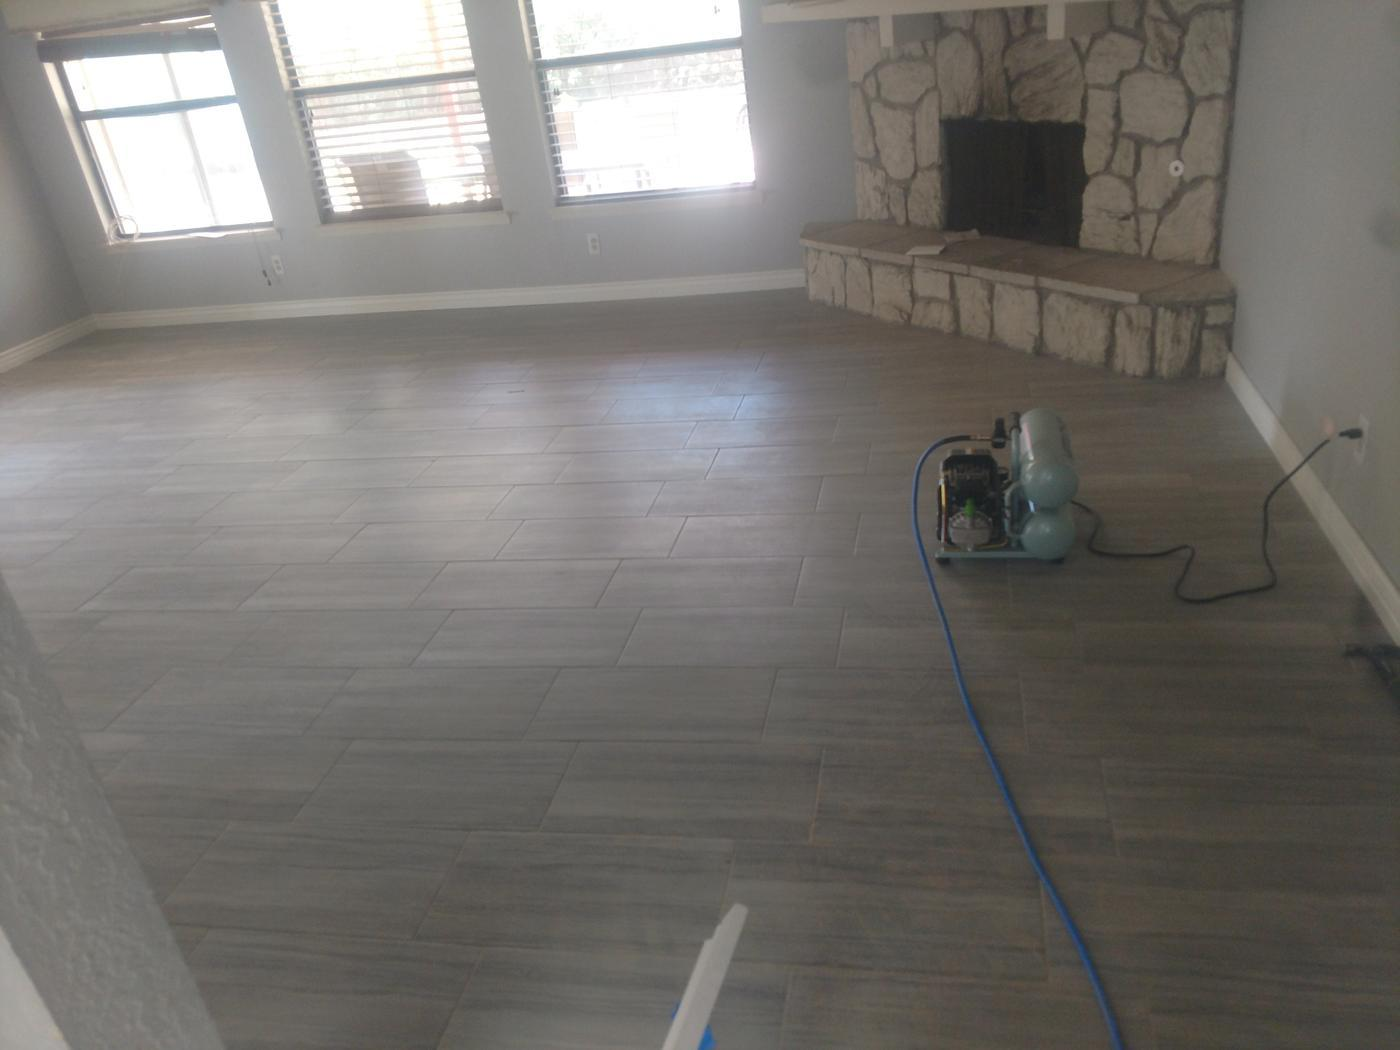 Flooring install completed